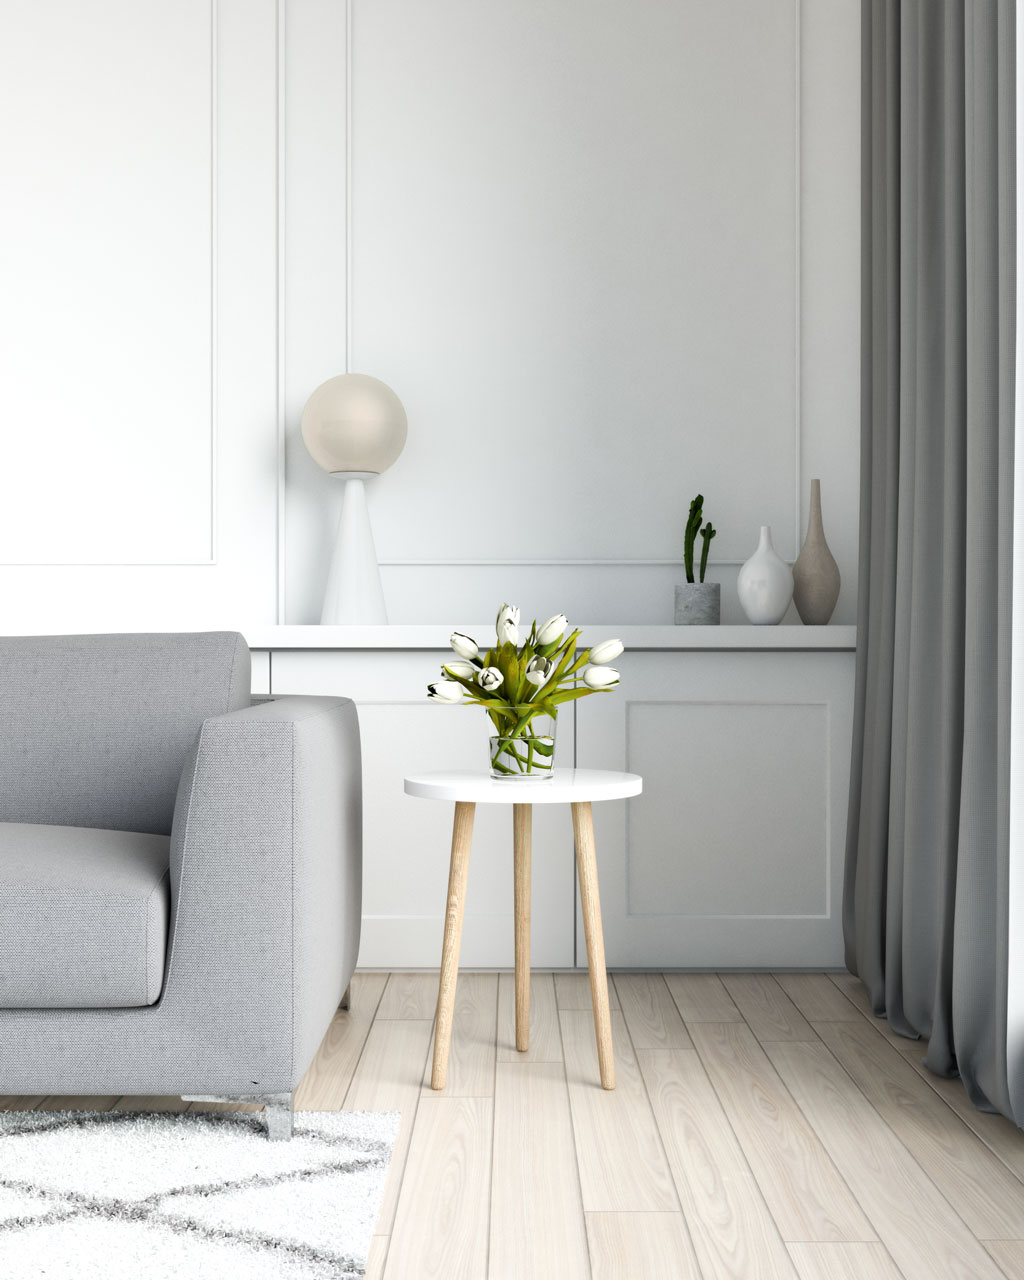 Simple white table with grey couch